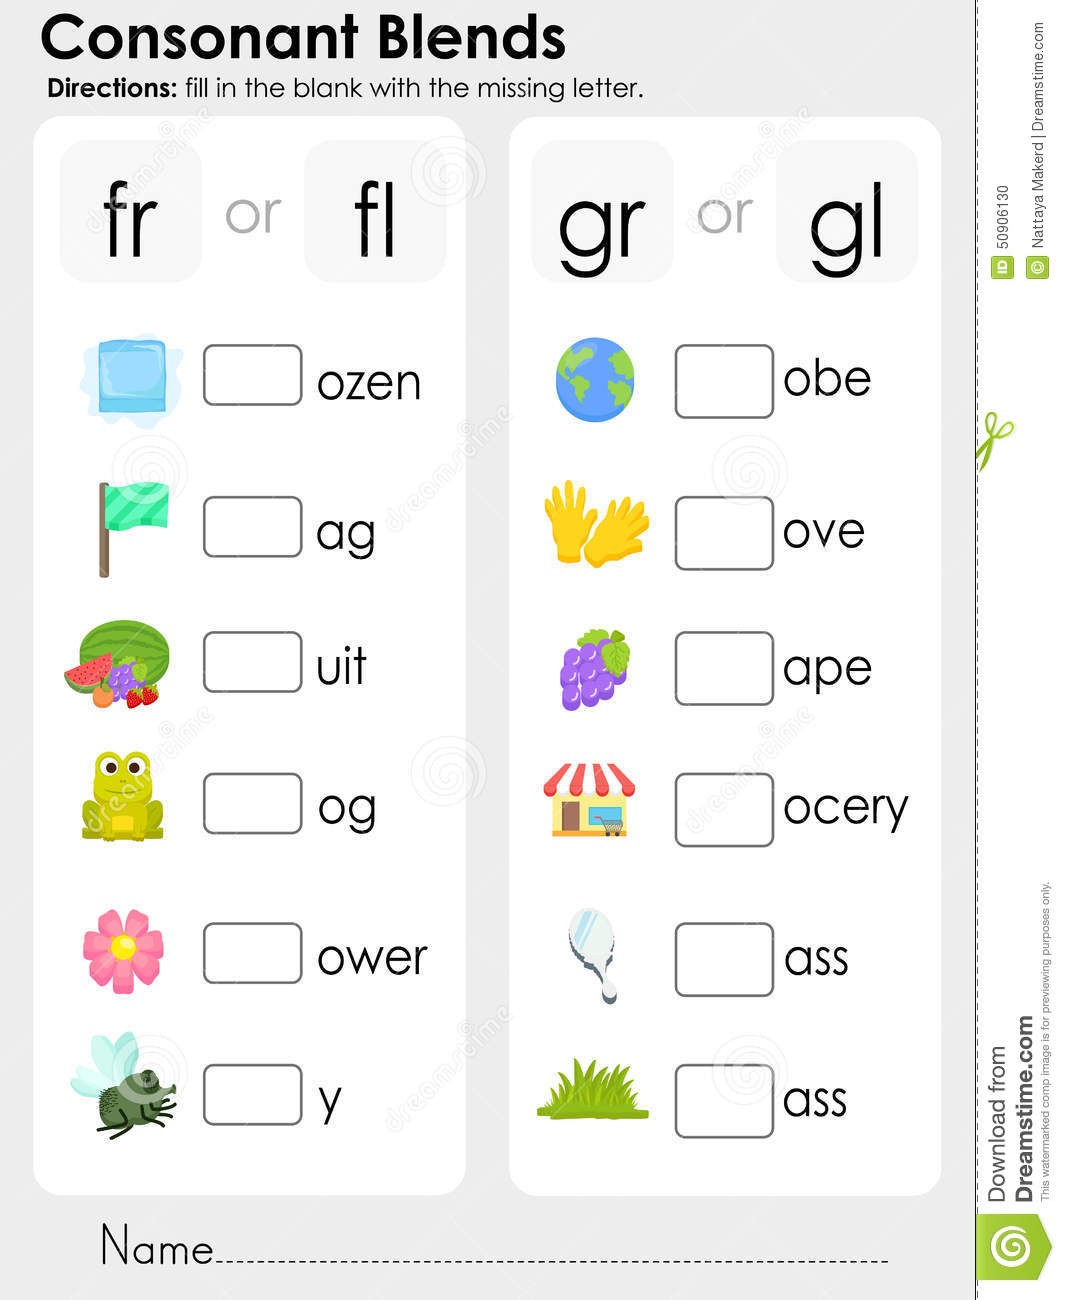 Worksheets Missing Vowel Worksheets consonant blends missing letter worksheet for education stock preschool grass